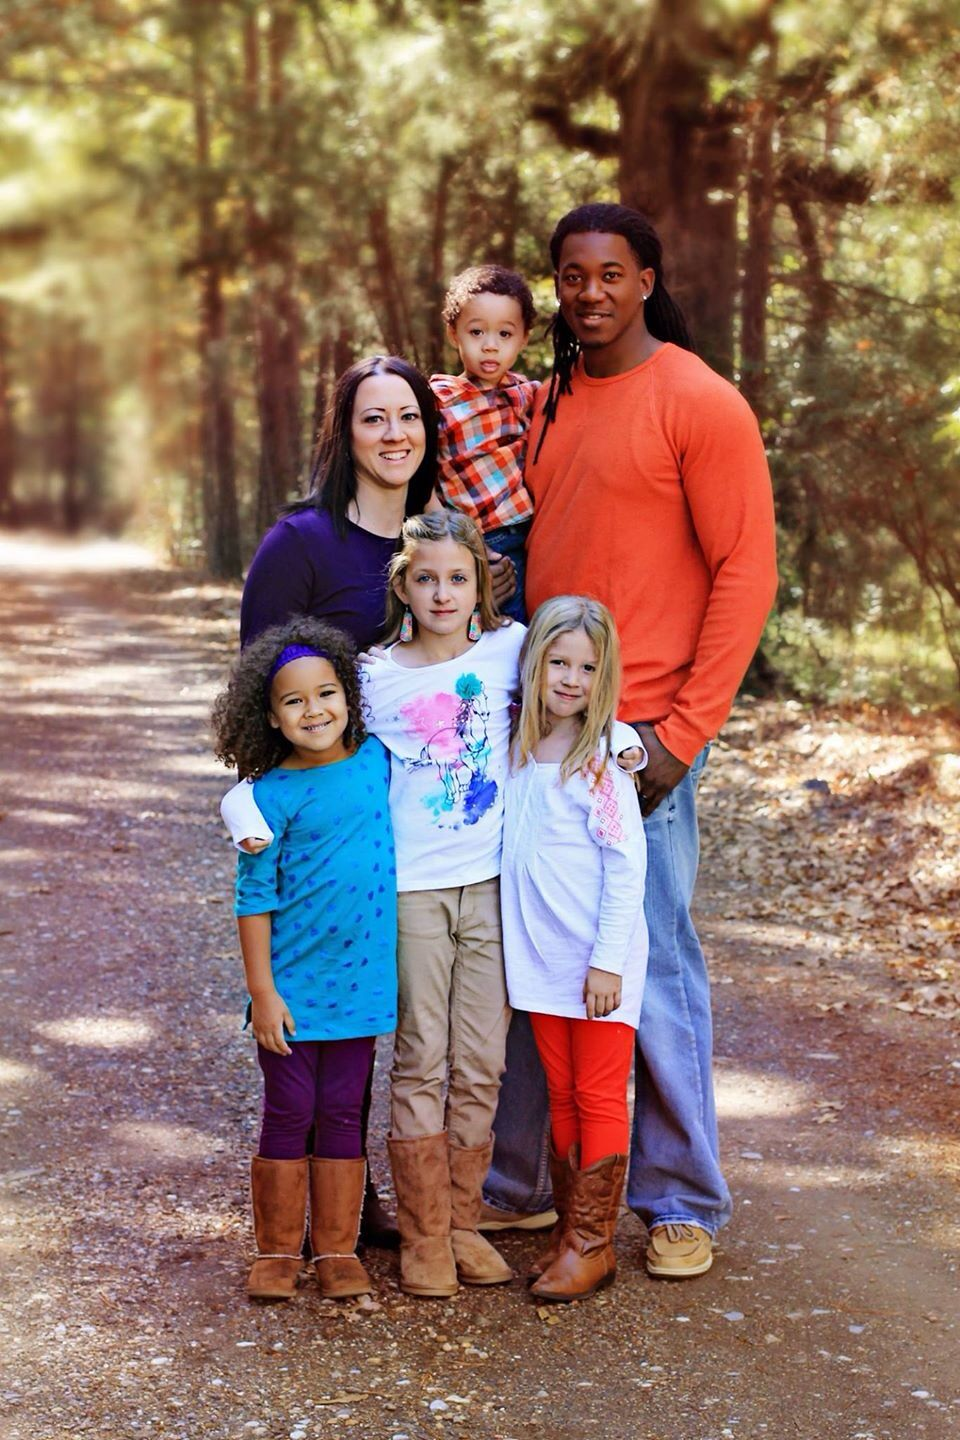 Family pose idea for 6 people. | Cute Pics | Pinterest | Pose ...